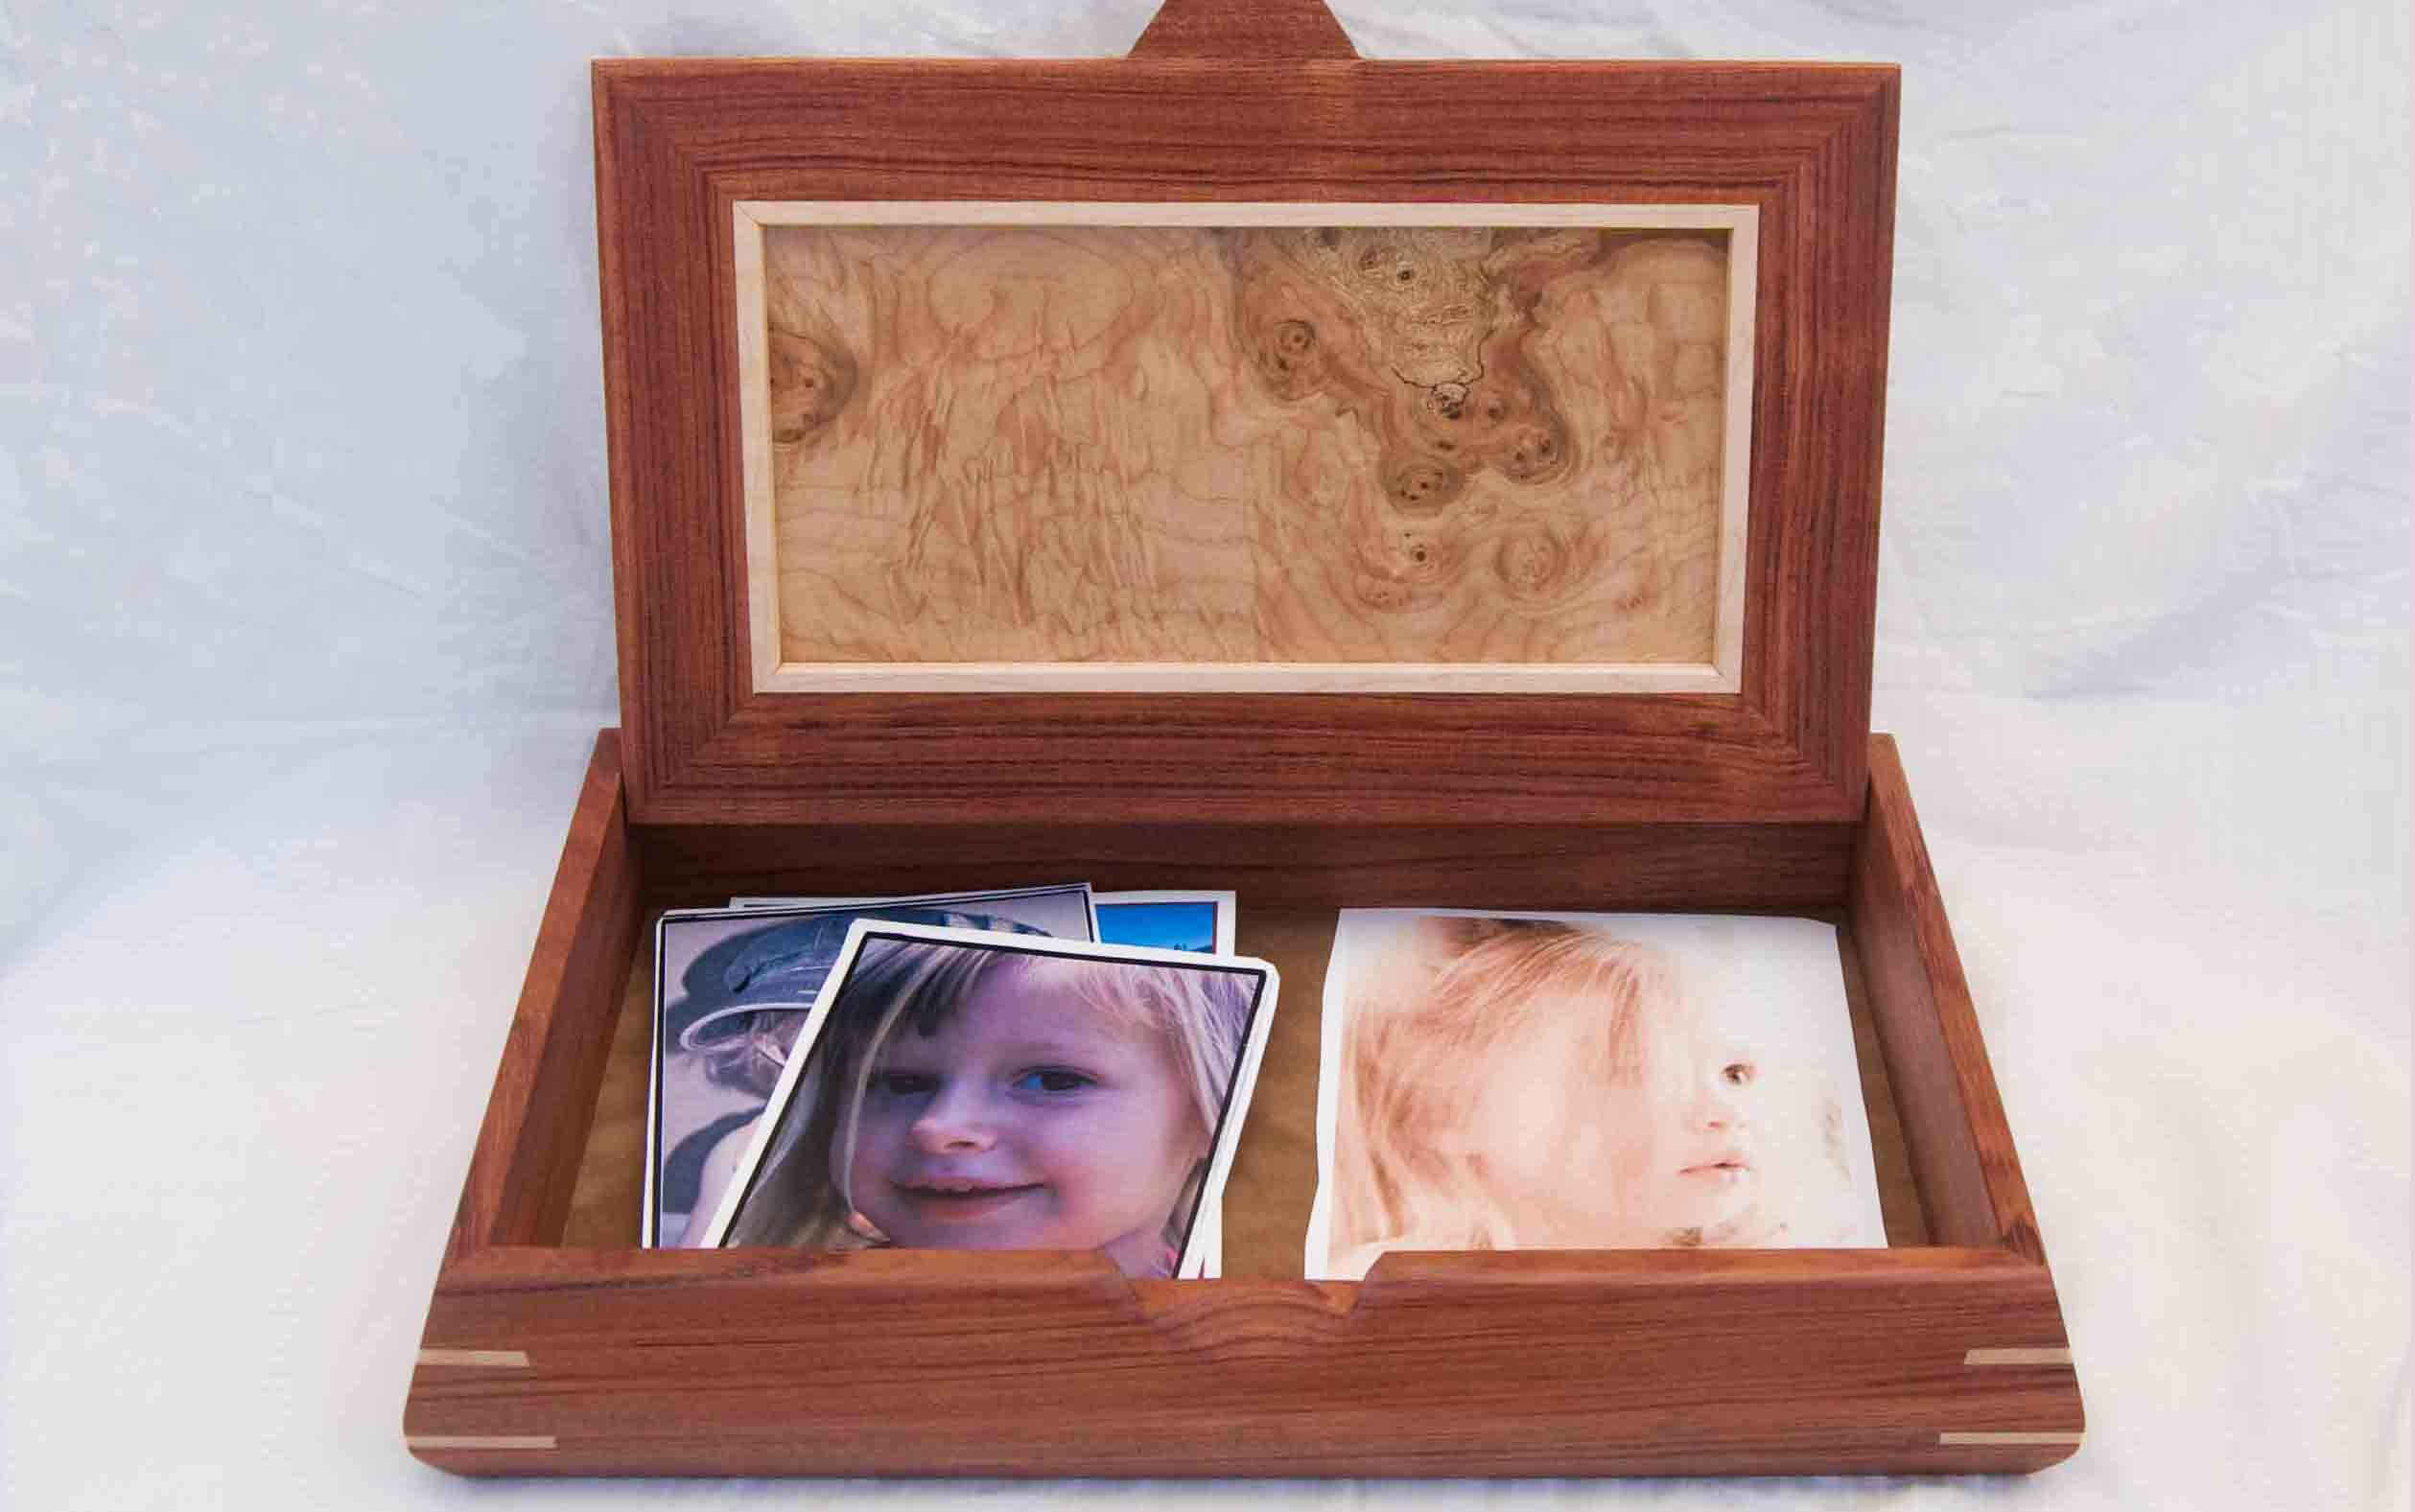 Unique gift idea for mom is a handmade wooden decorative keepsake box shown holding photos